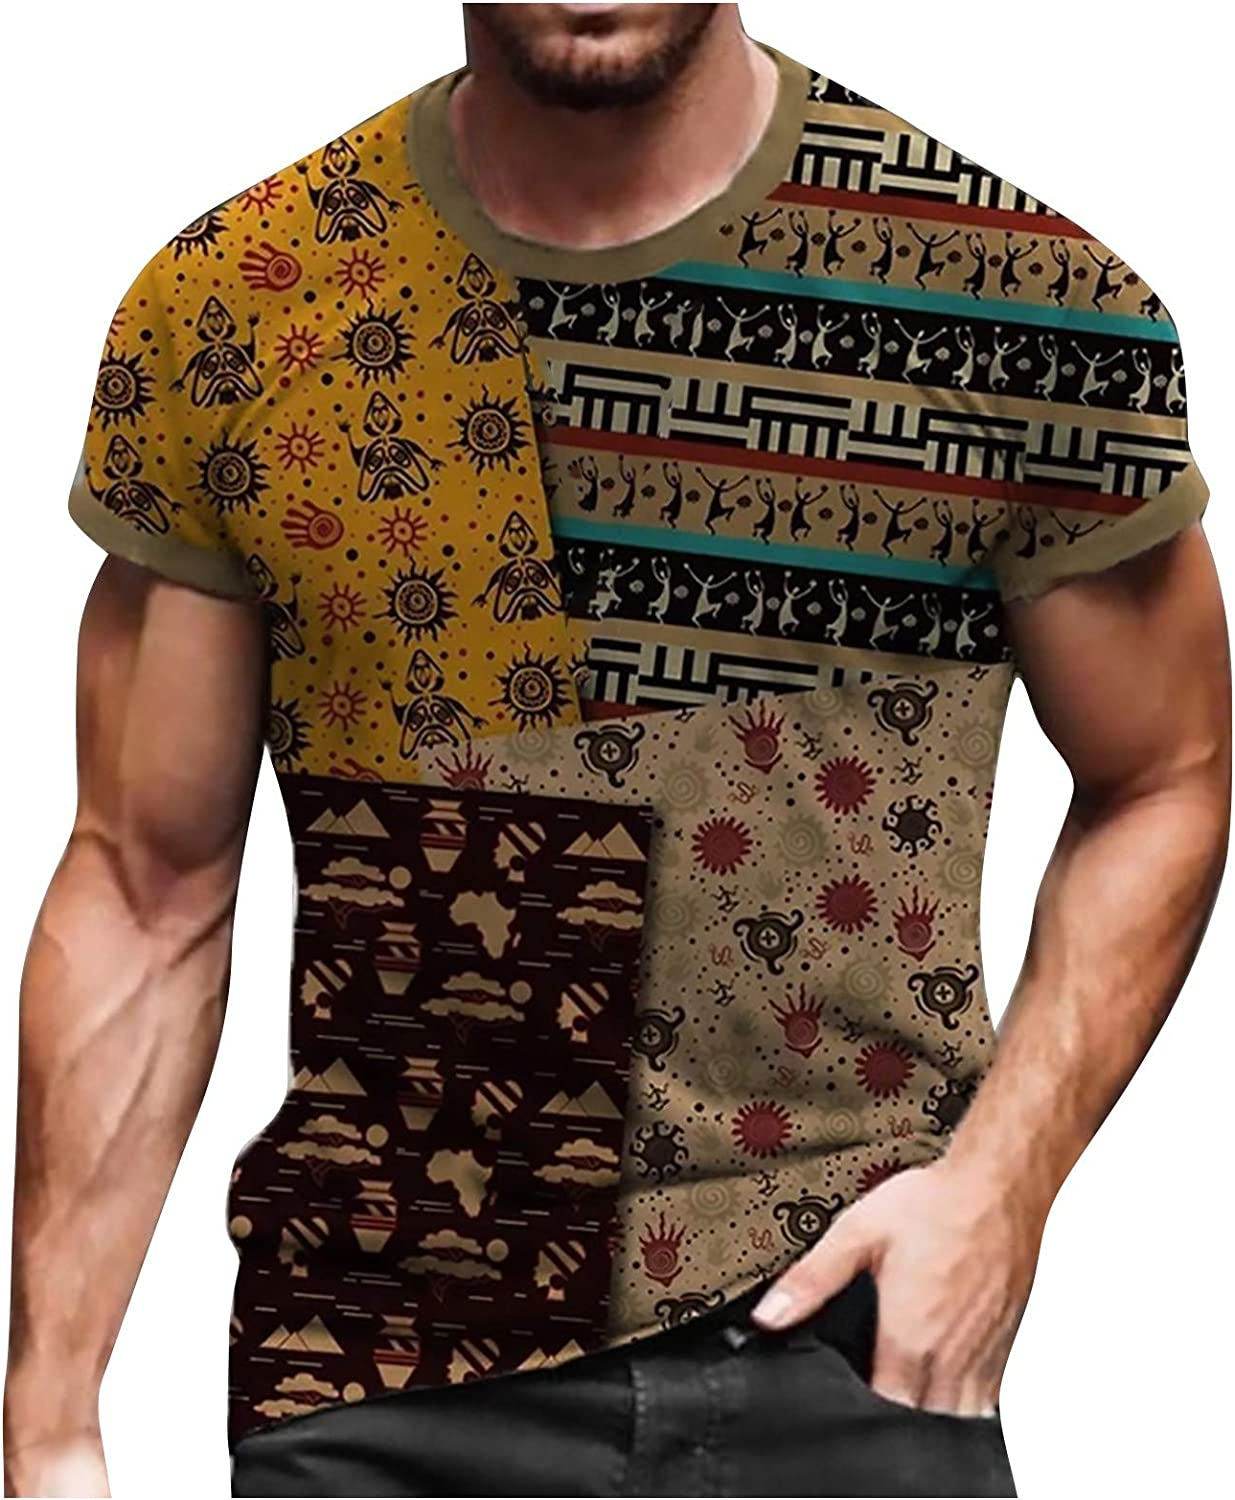 Mens T-Shirts,Cool Novelty Design Graphic T-Shirts for Guys Hipster Hip Hop T-Shirt Crewneck Tee for Men